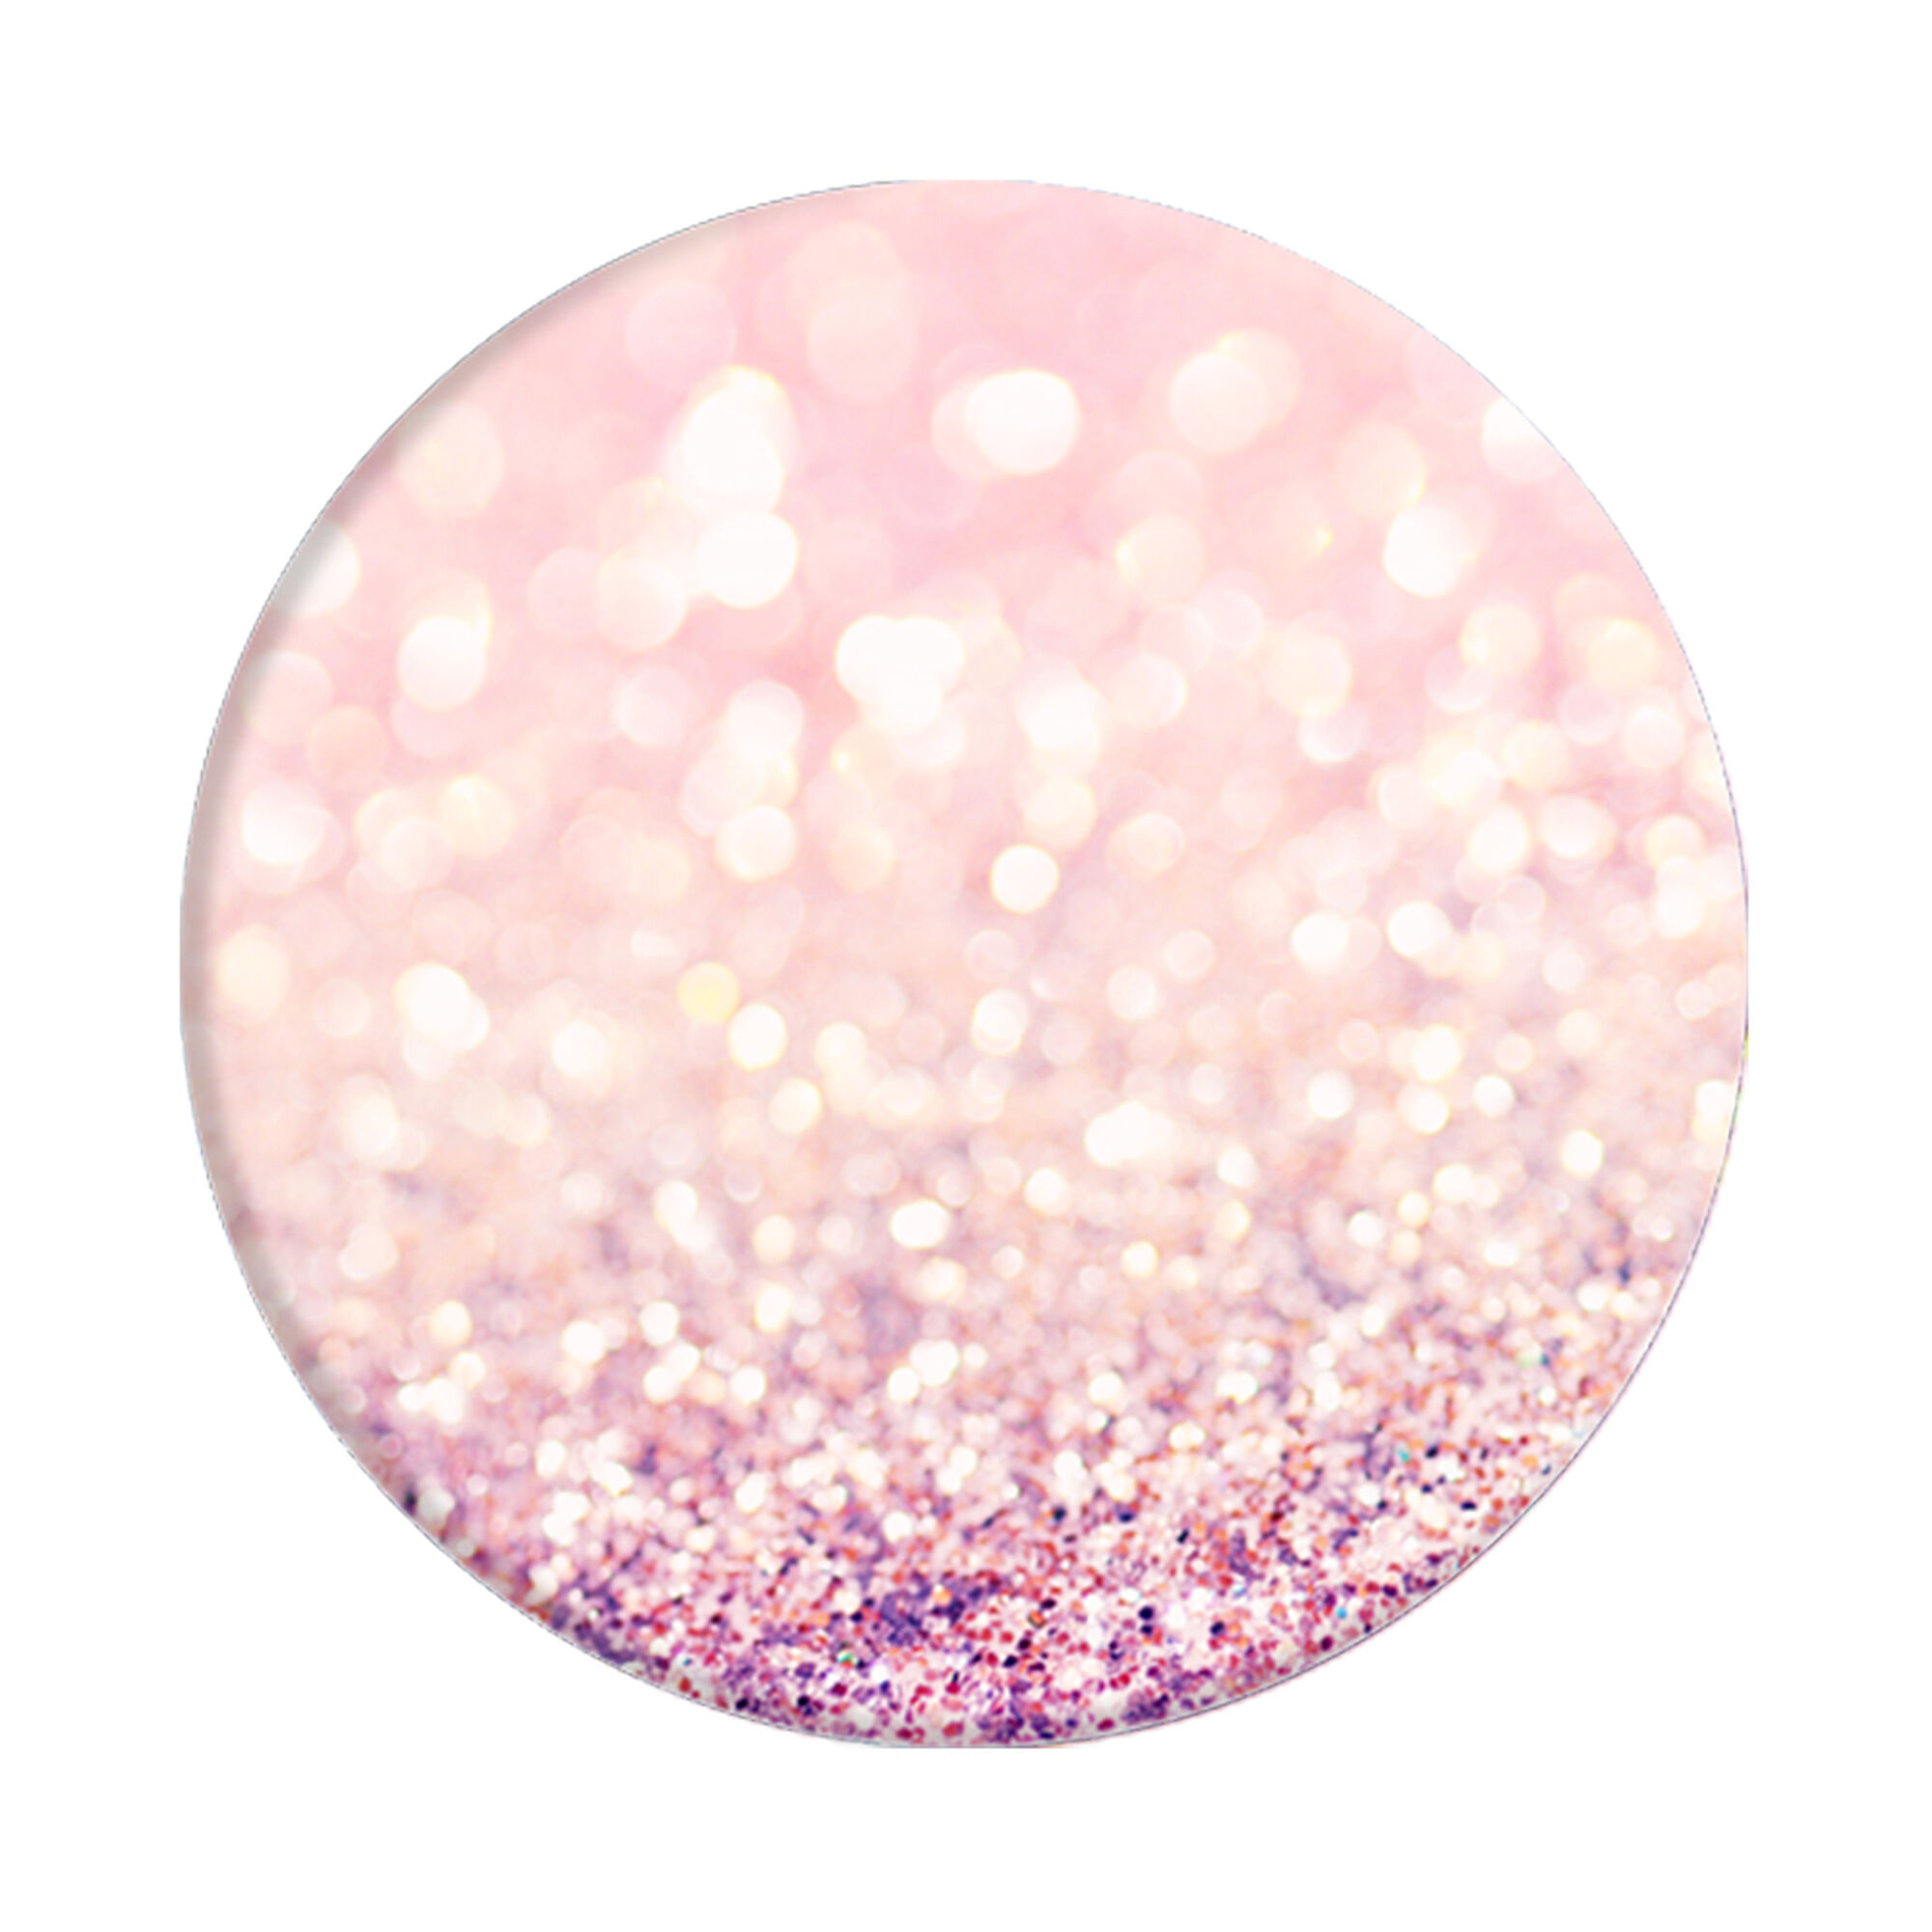 Blush Glitter Popsocket Claire S Us